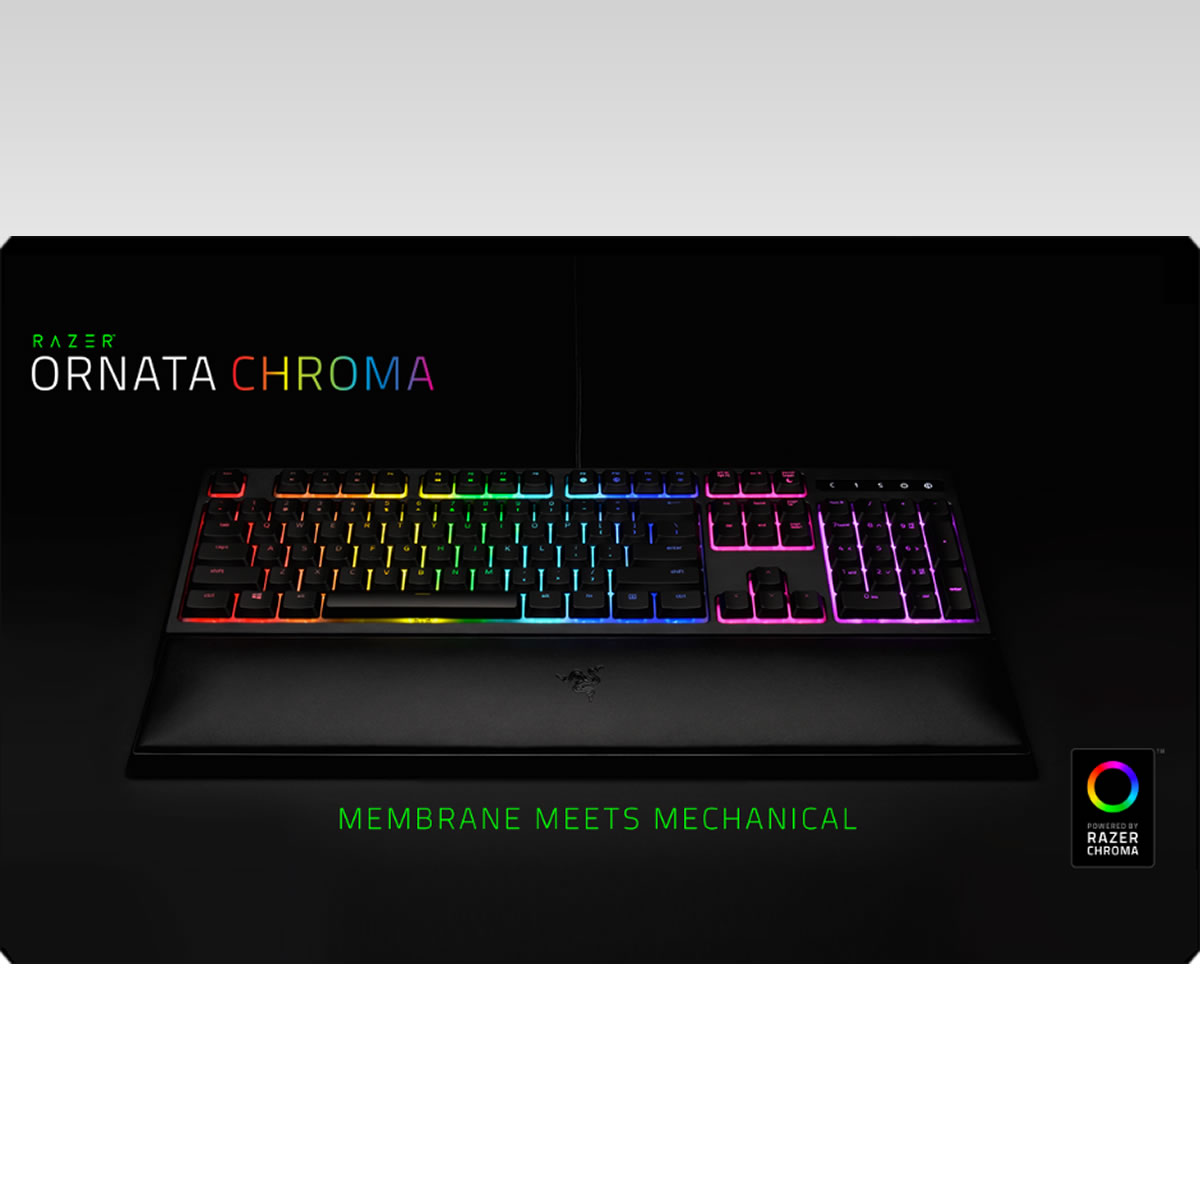 RAZER - ORNATA CHROMA KEYBOARD [GR] 8886419343349 (PC)